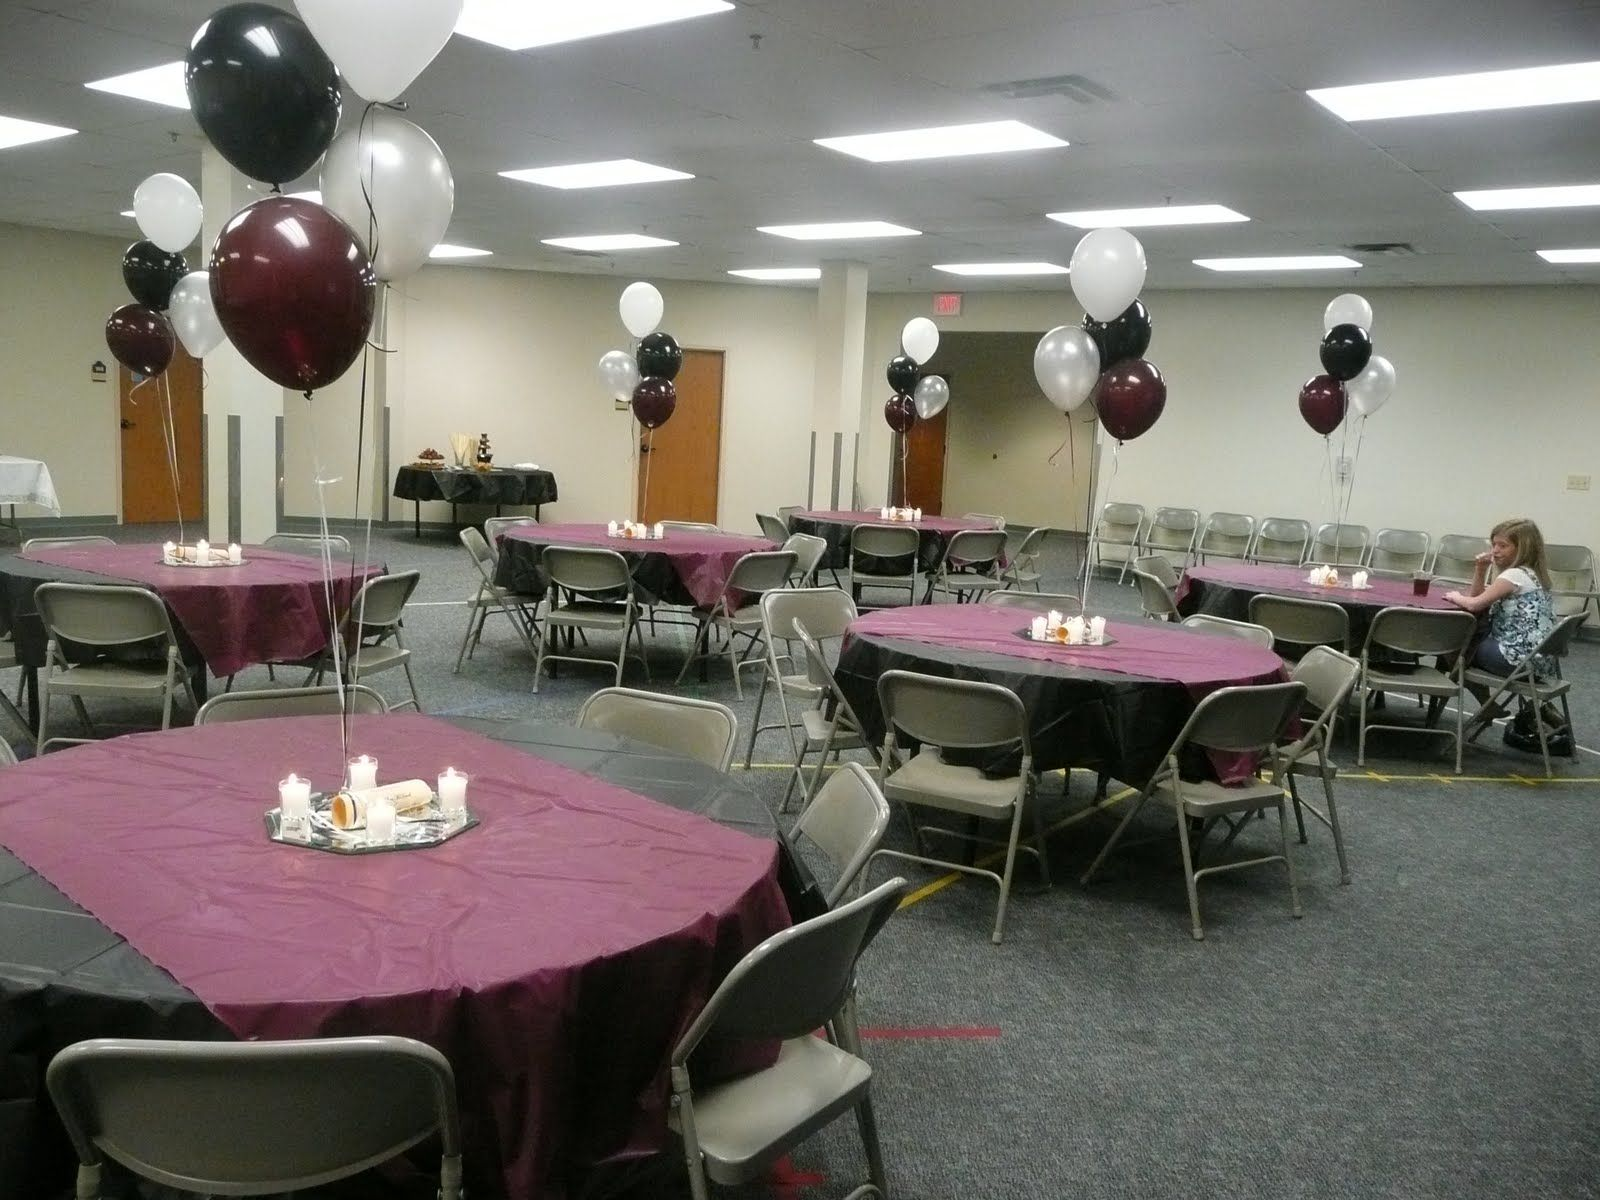 Kelsey S Collections Grad Party Gone Right Graduation Party Decor Graduation Tables Graduation Table Decorations